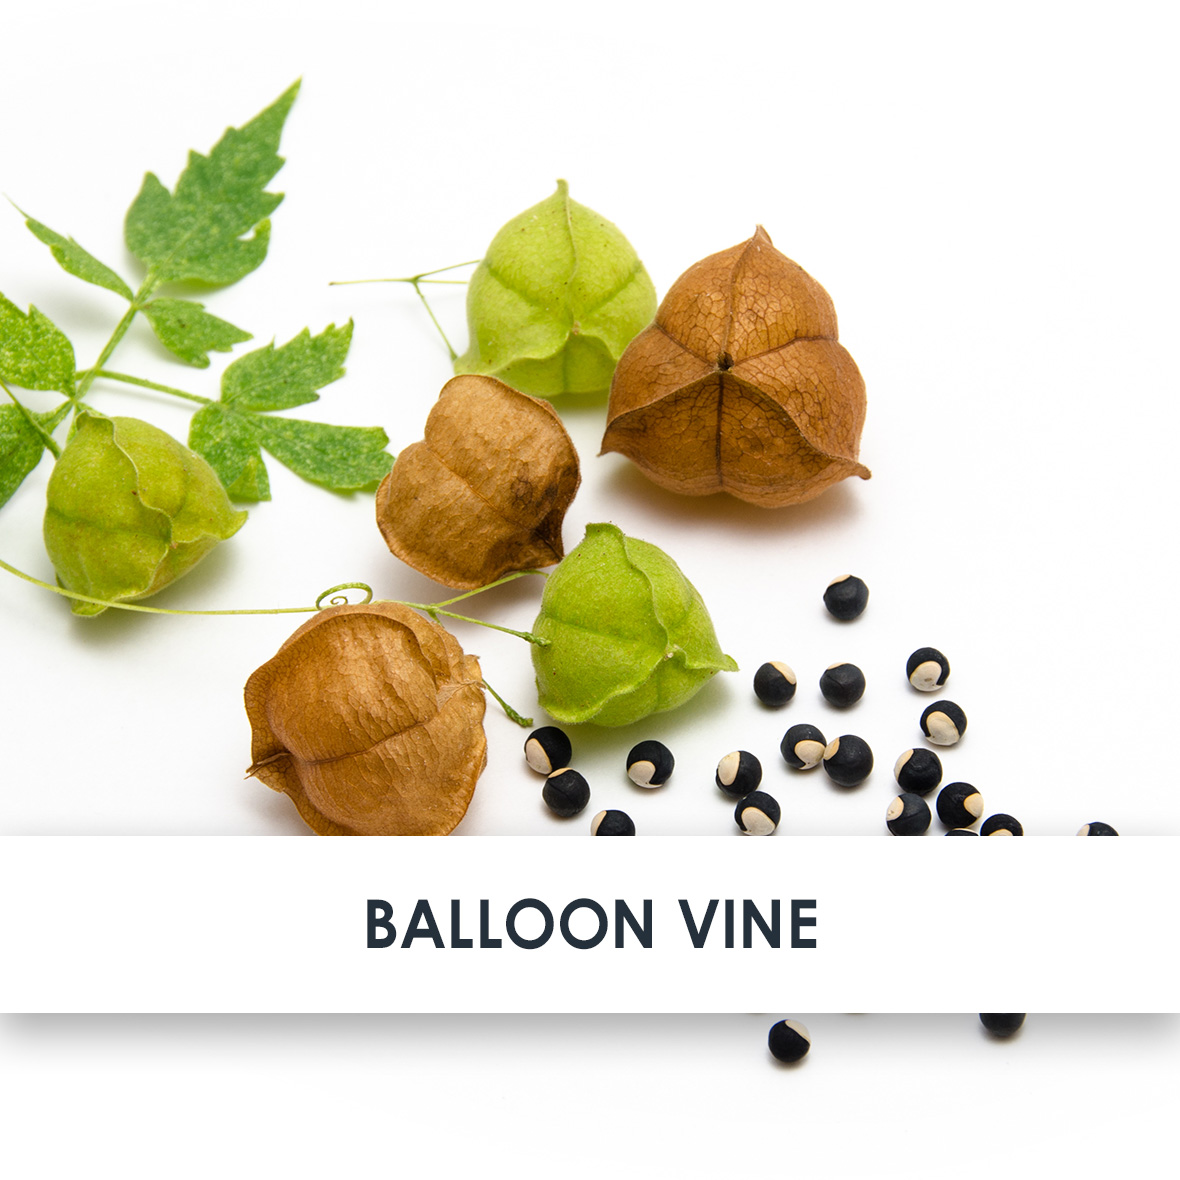 Active Ingredient Balloon Vine